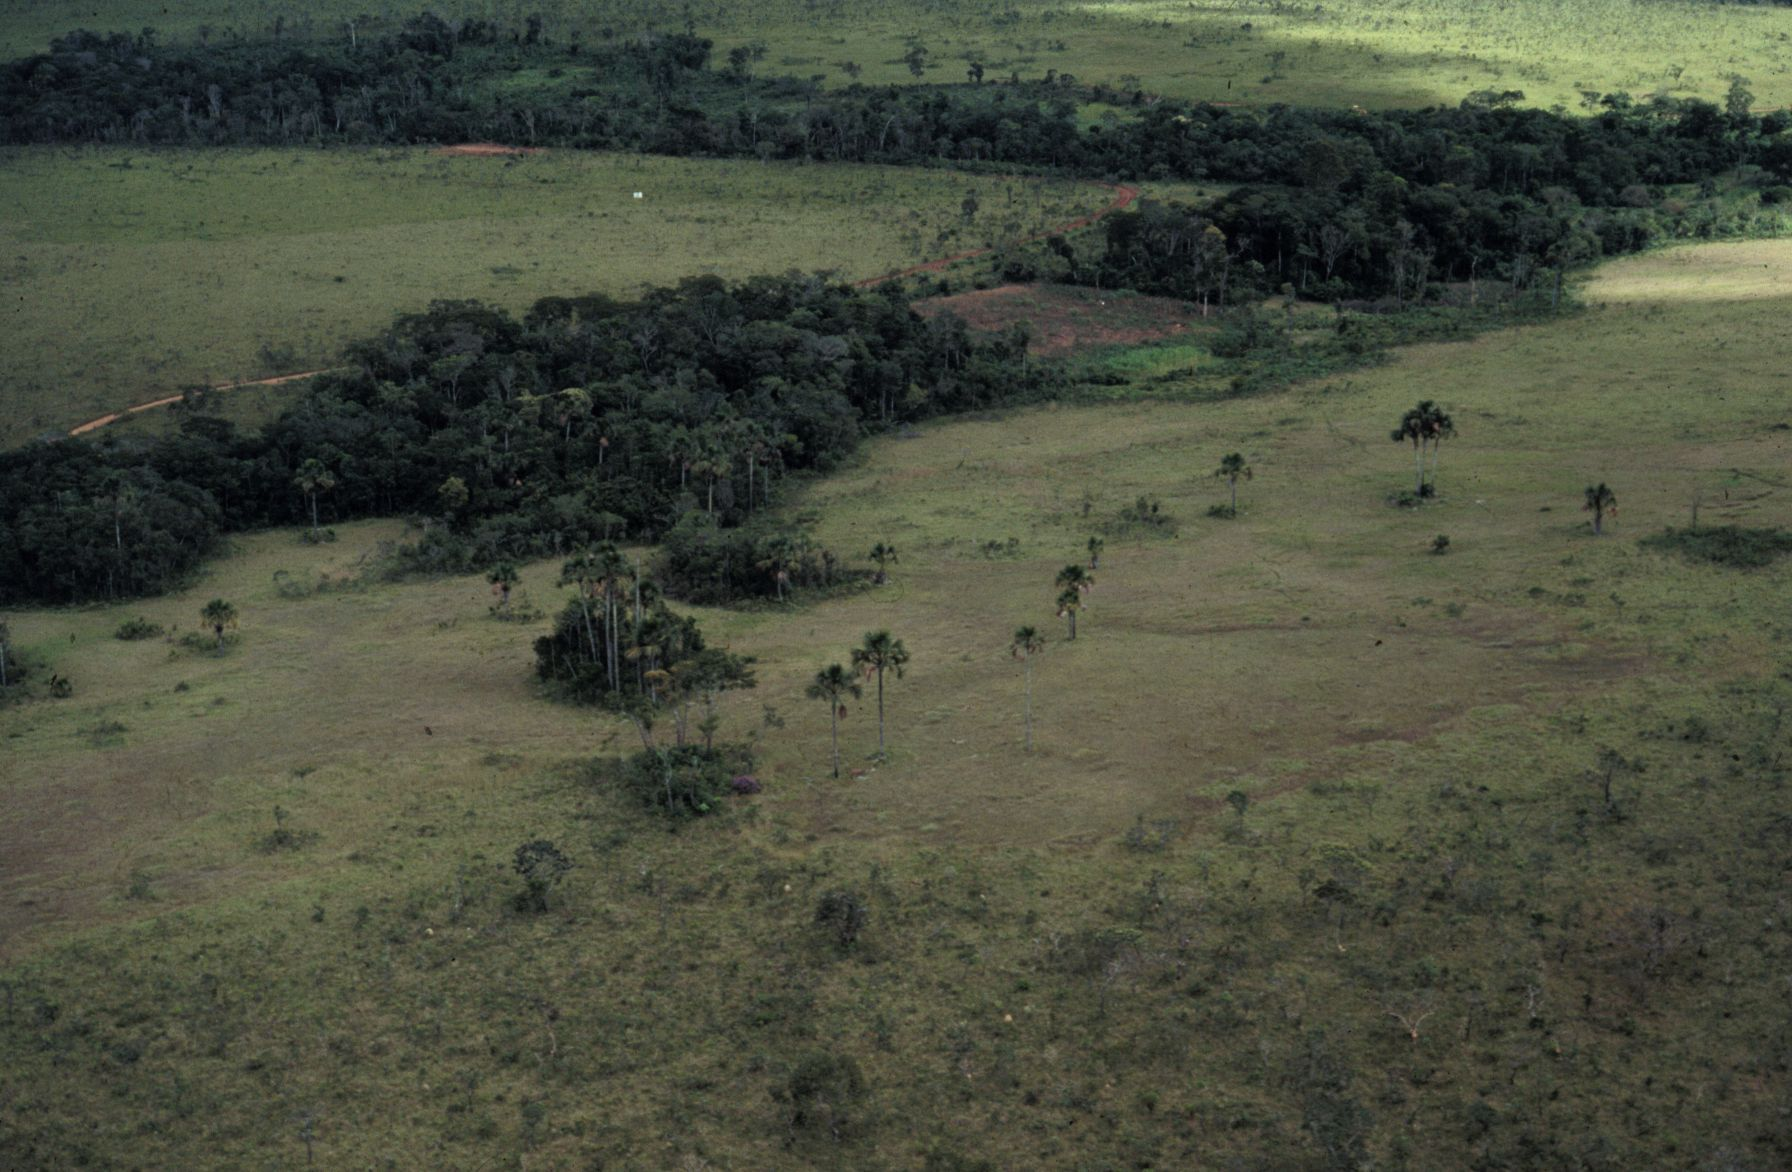 Cerrado is characterized by the patchy distribution of distinct habitats, such as savanna, grasslands and forest habitats (photo credit: P.E. Oliveira).